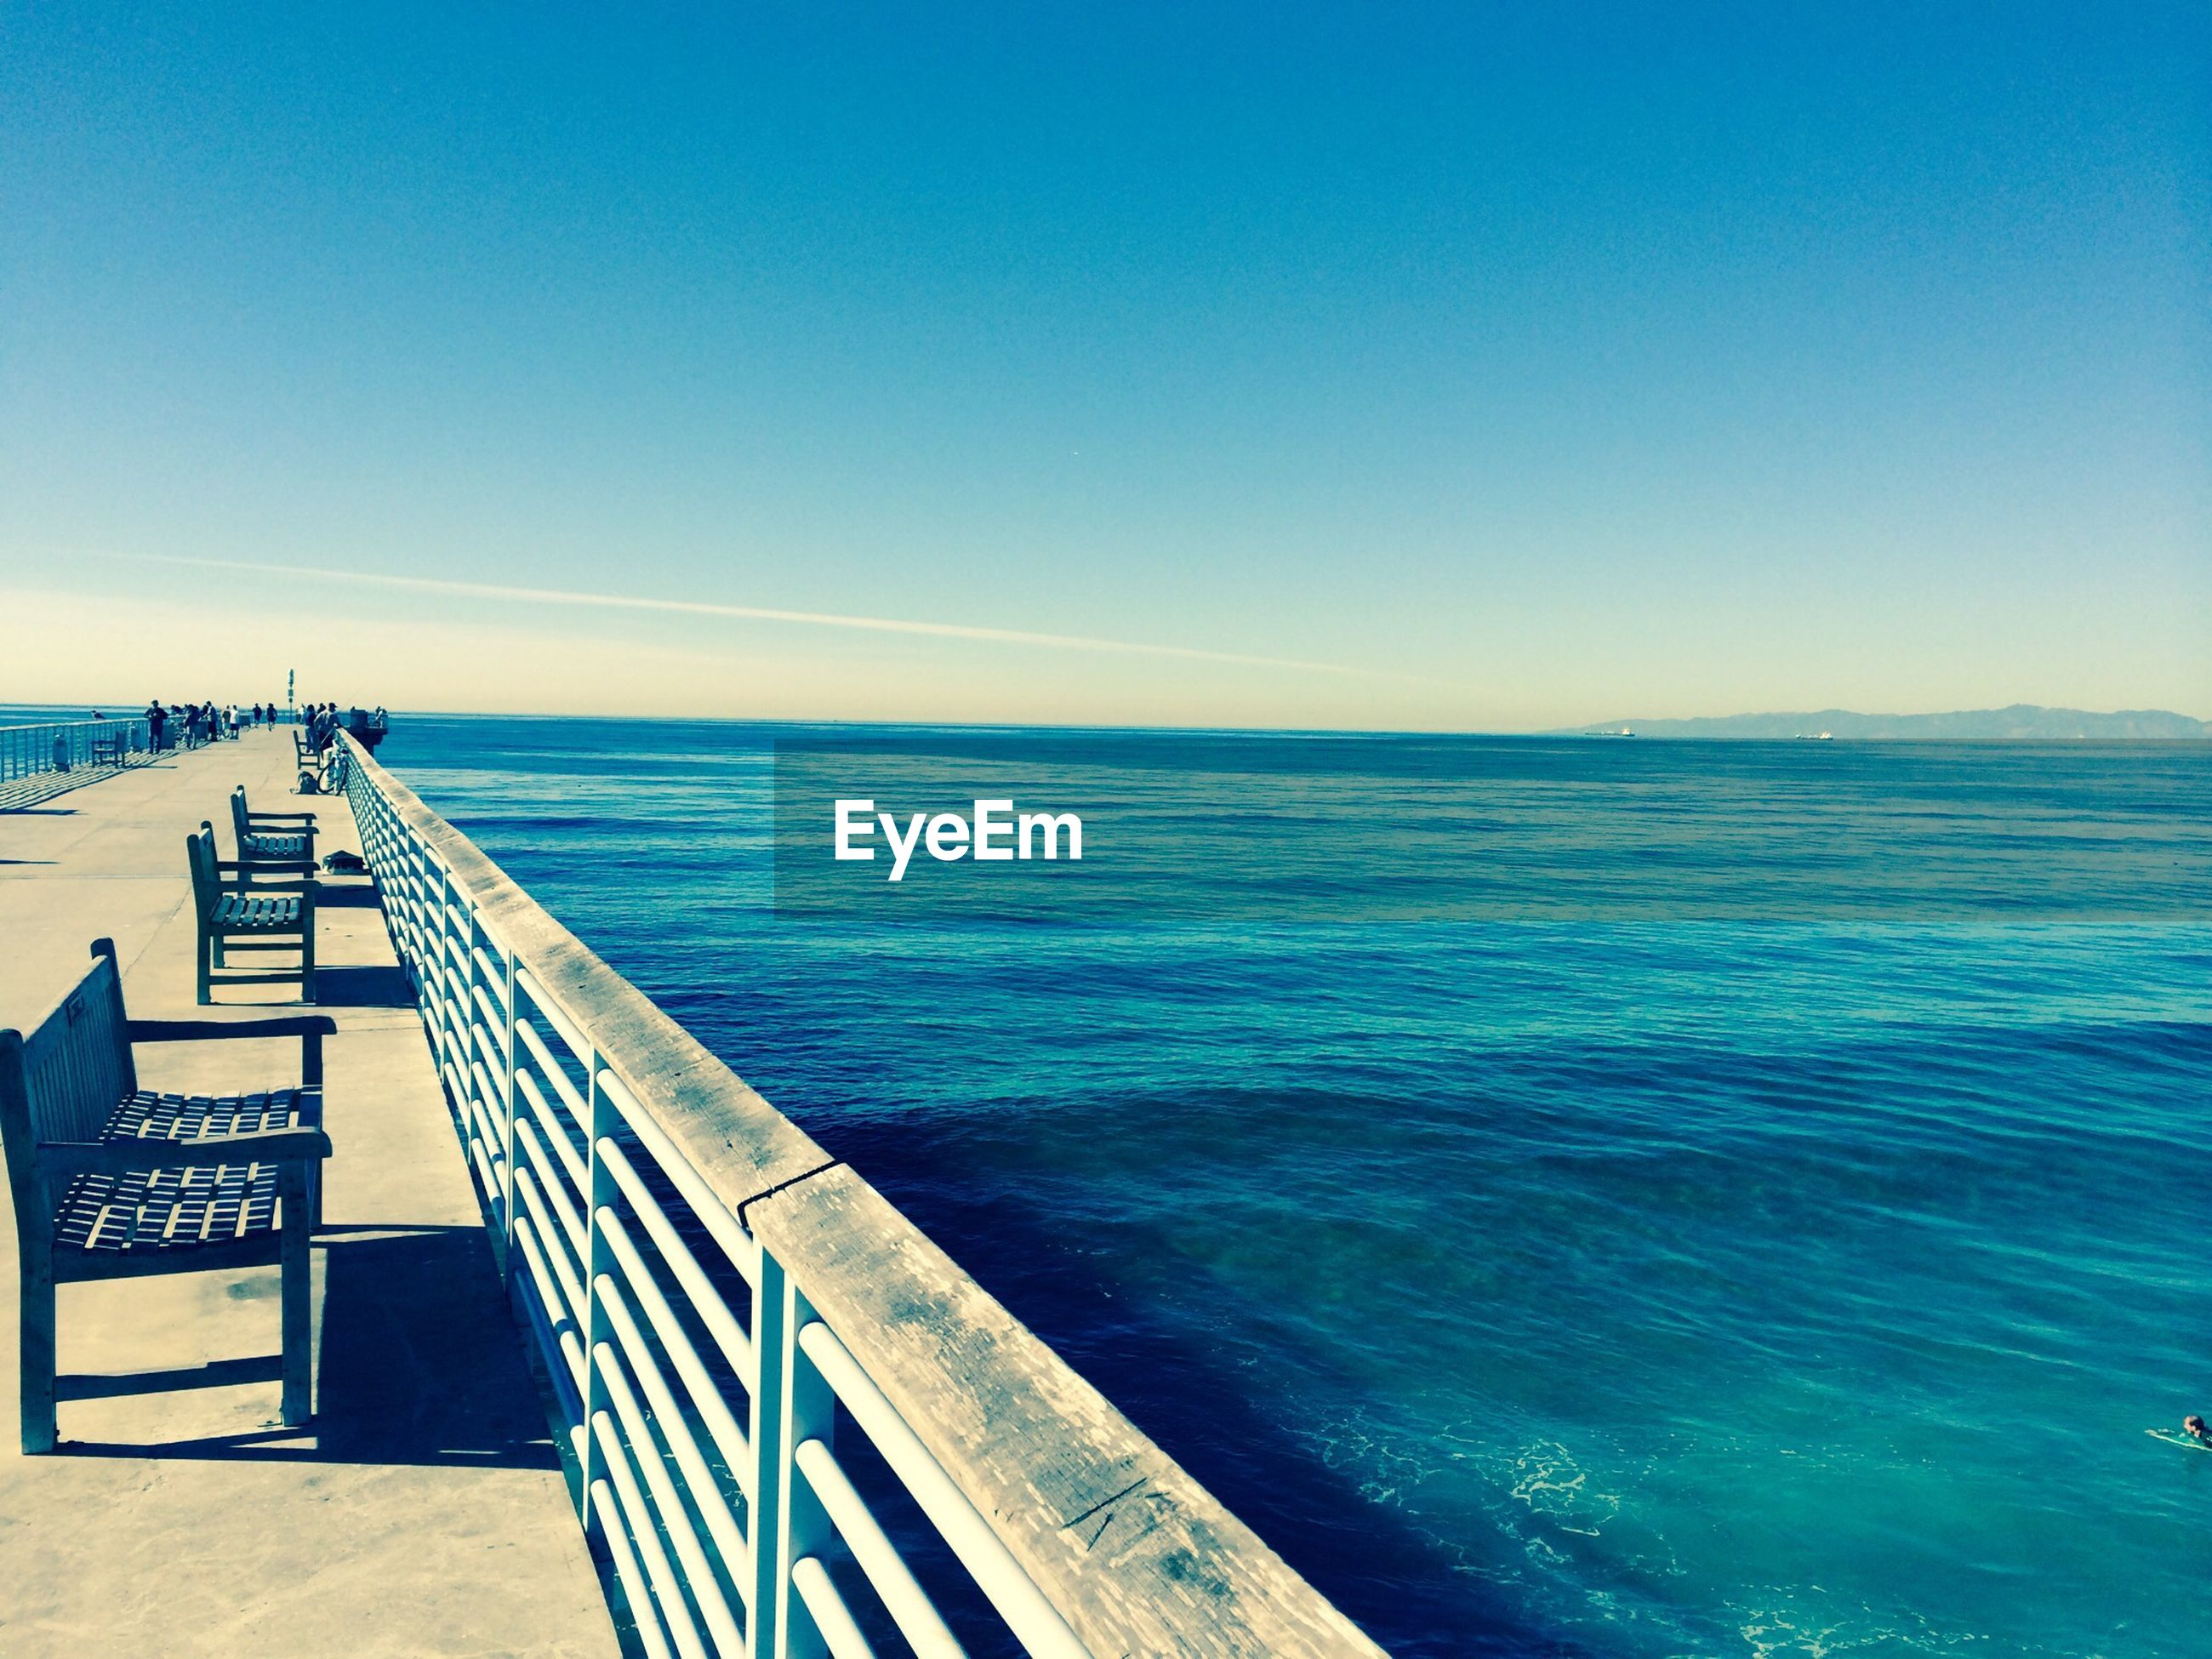 sea, water, blue, horizon over water, tranquil scene, tranquility, scenics, beauty in nature, pier, nature, copy space, sky, railing, clear sky, idyllic, beach, seascape, ocean, day, rippled